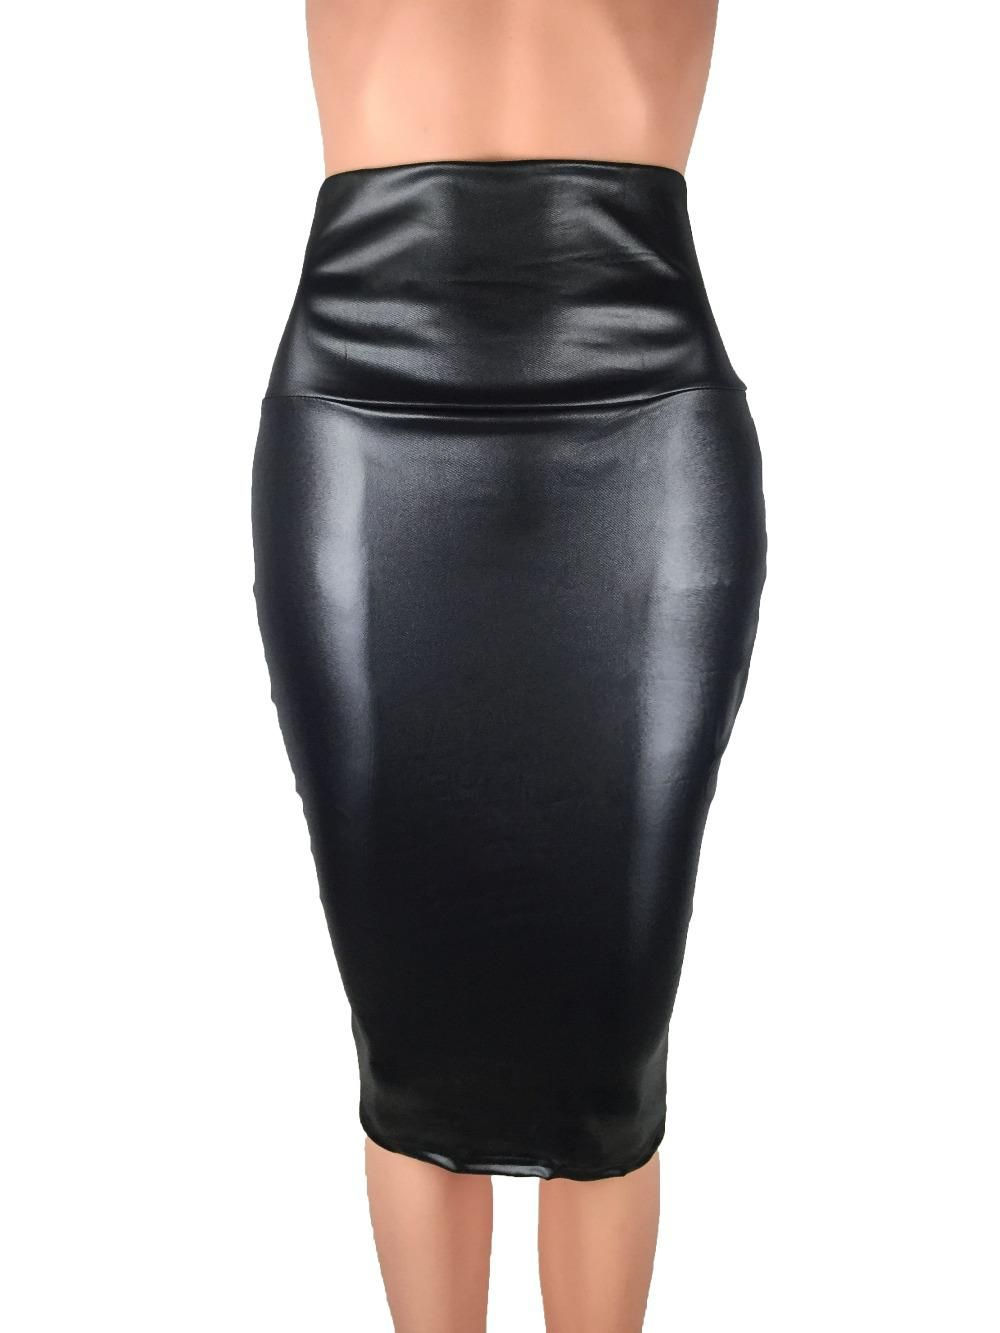 ede477184bc Bohocotol 2018 pencil faux leather skirt women casual plus size clothing  chic elegant sexy fitness black midi pencil skirts. Yesterday s price  US   9.88 ...